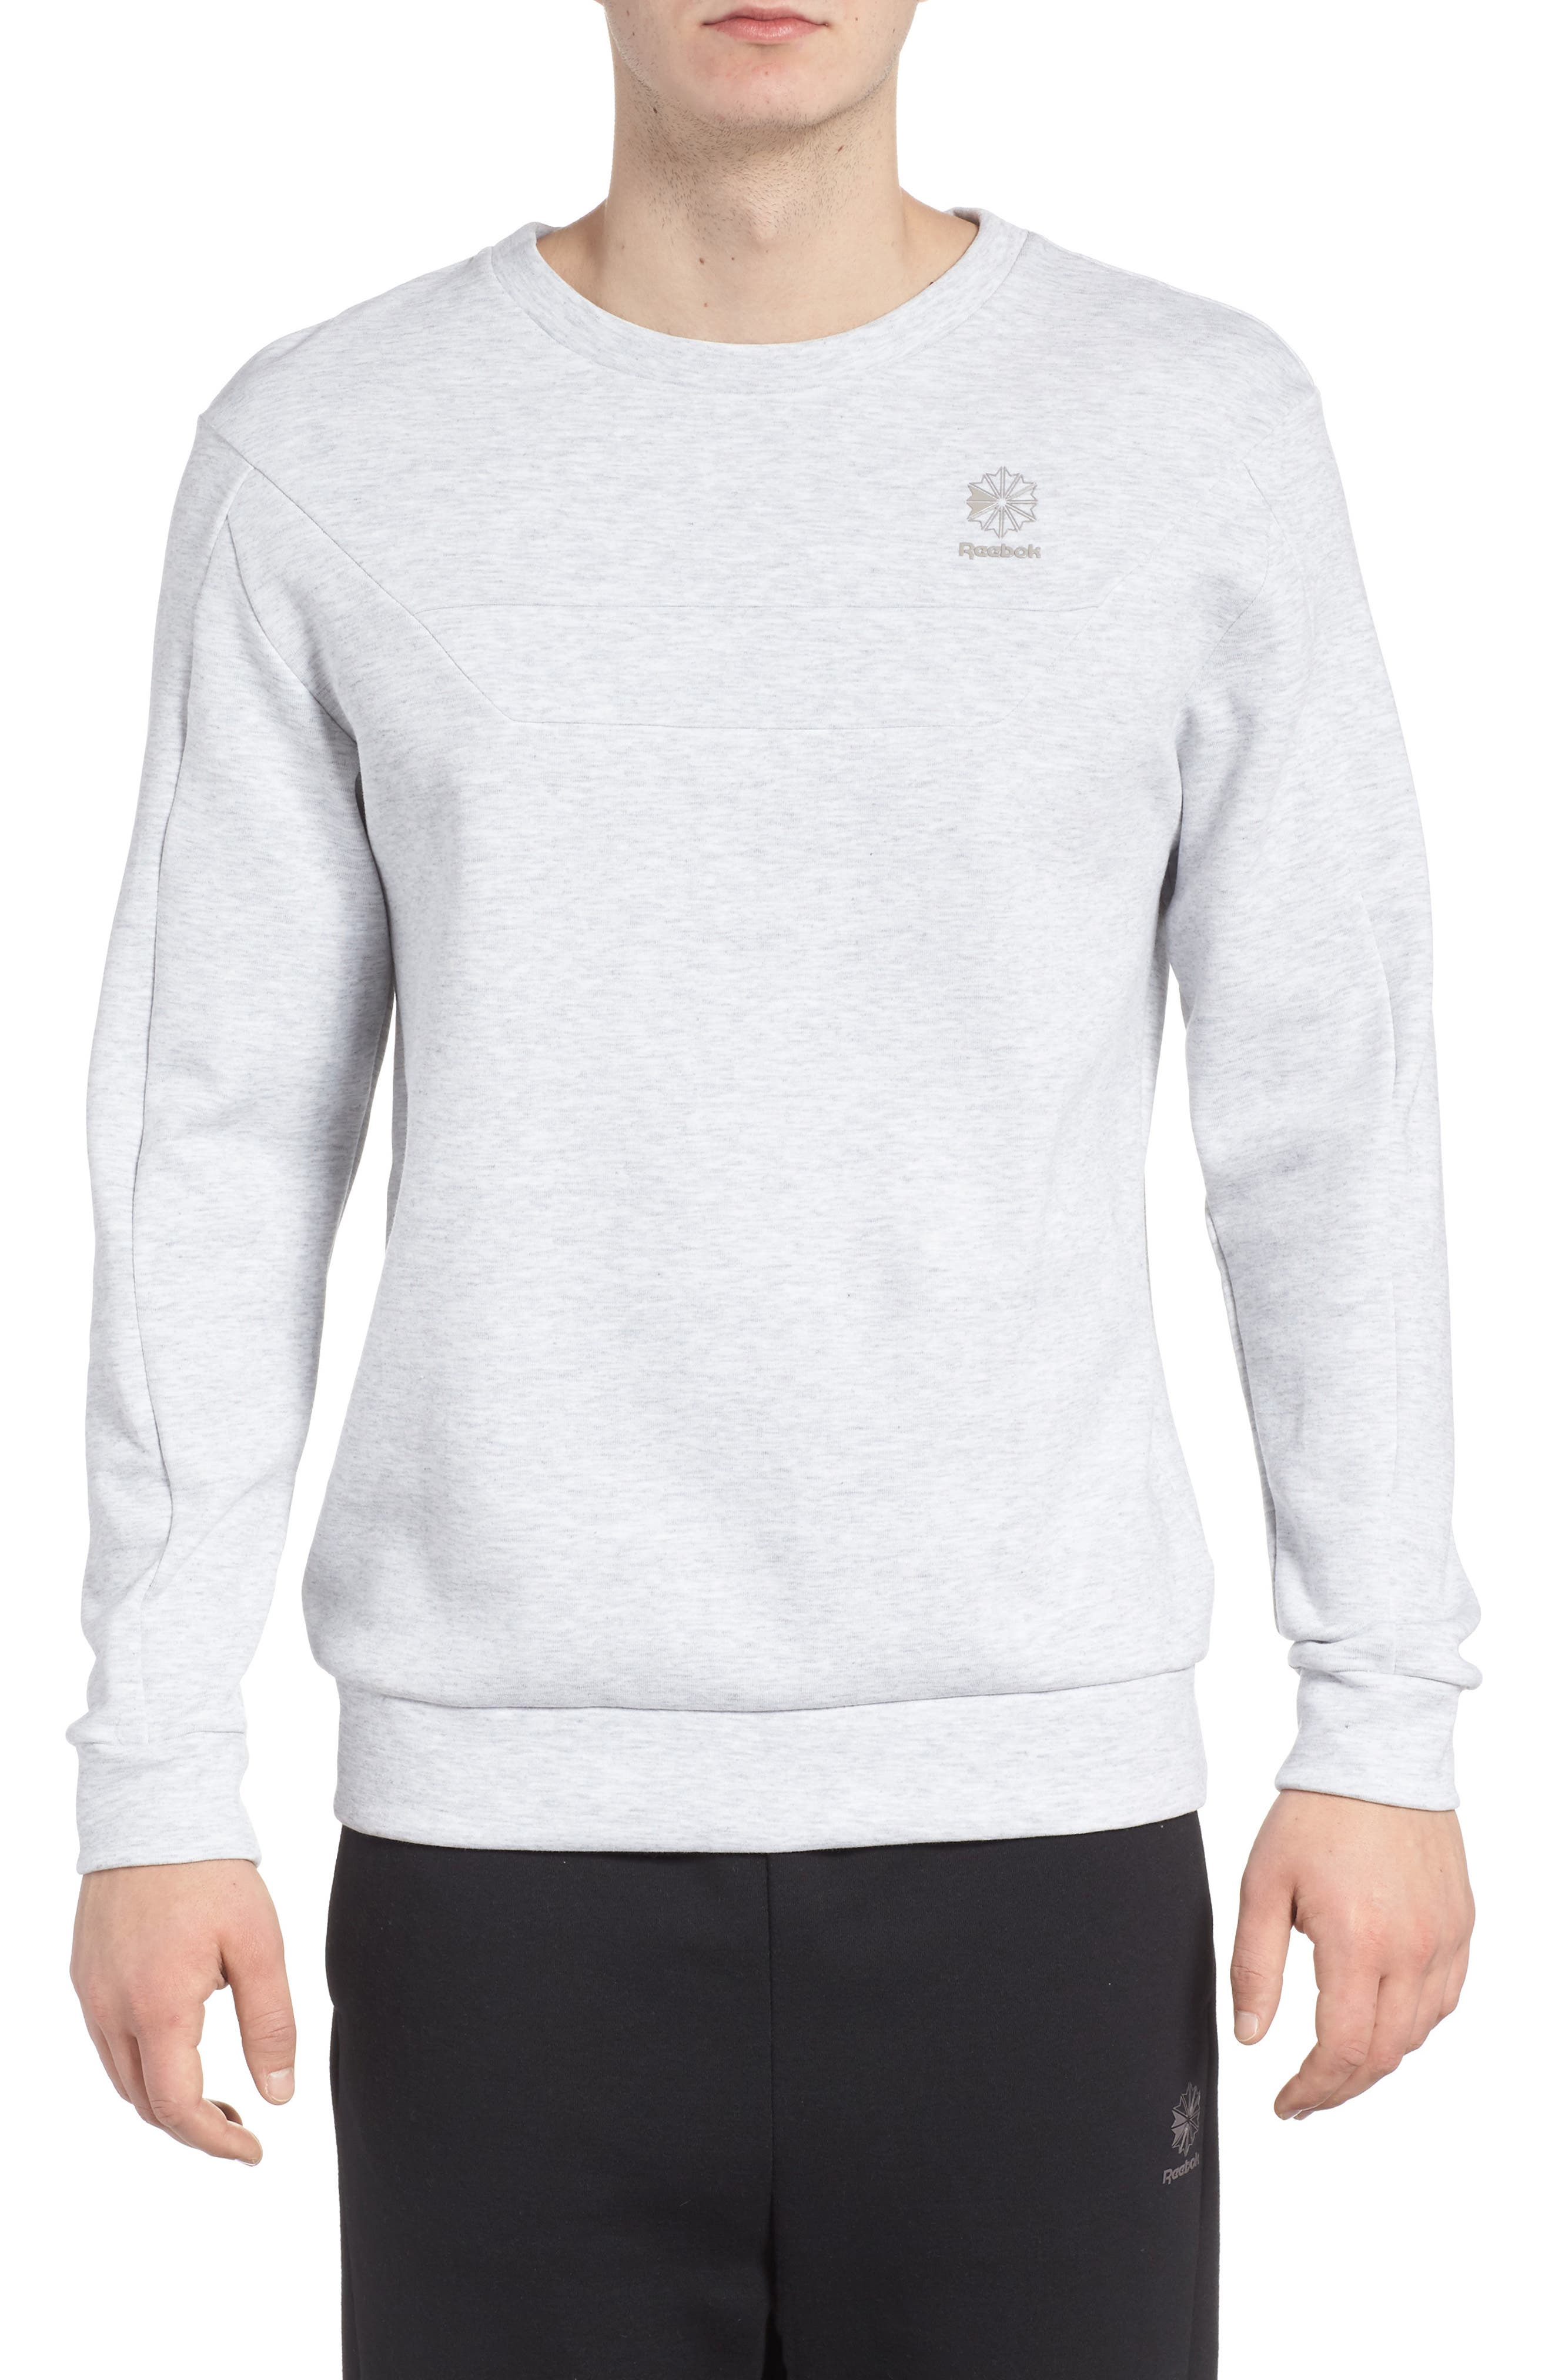 Double Sweatshirt,                         Main,                         color, Light Grey Heather